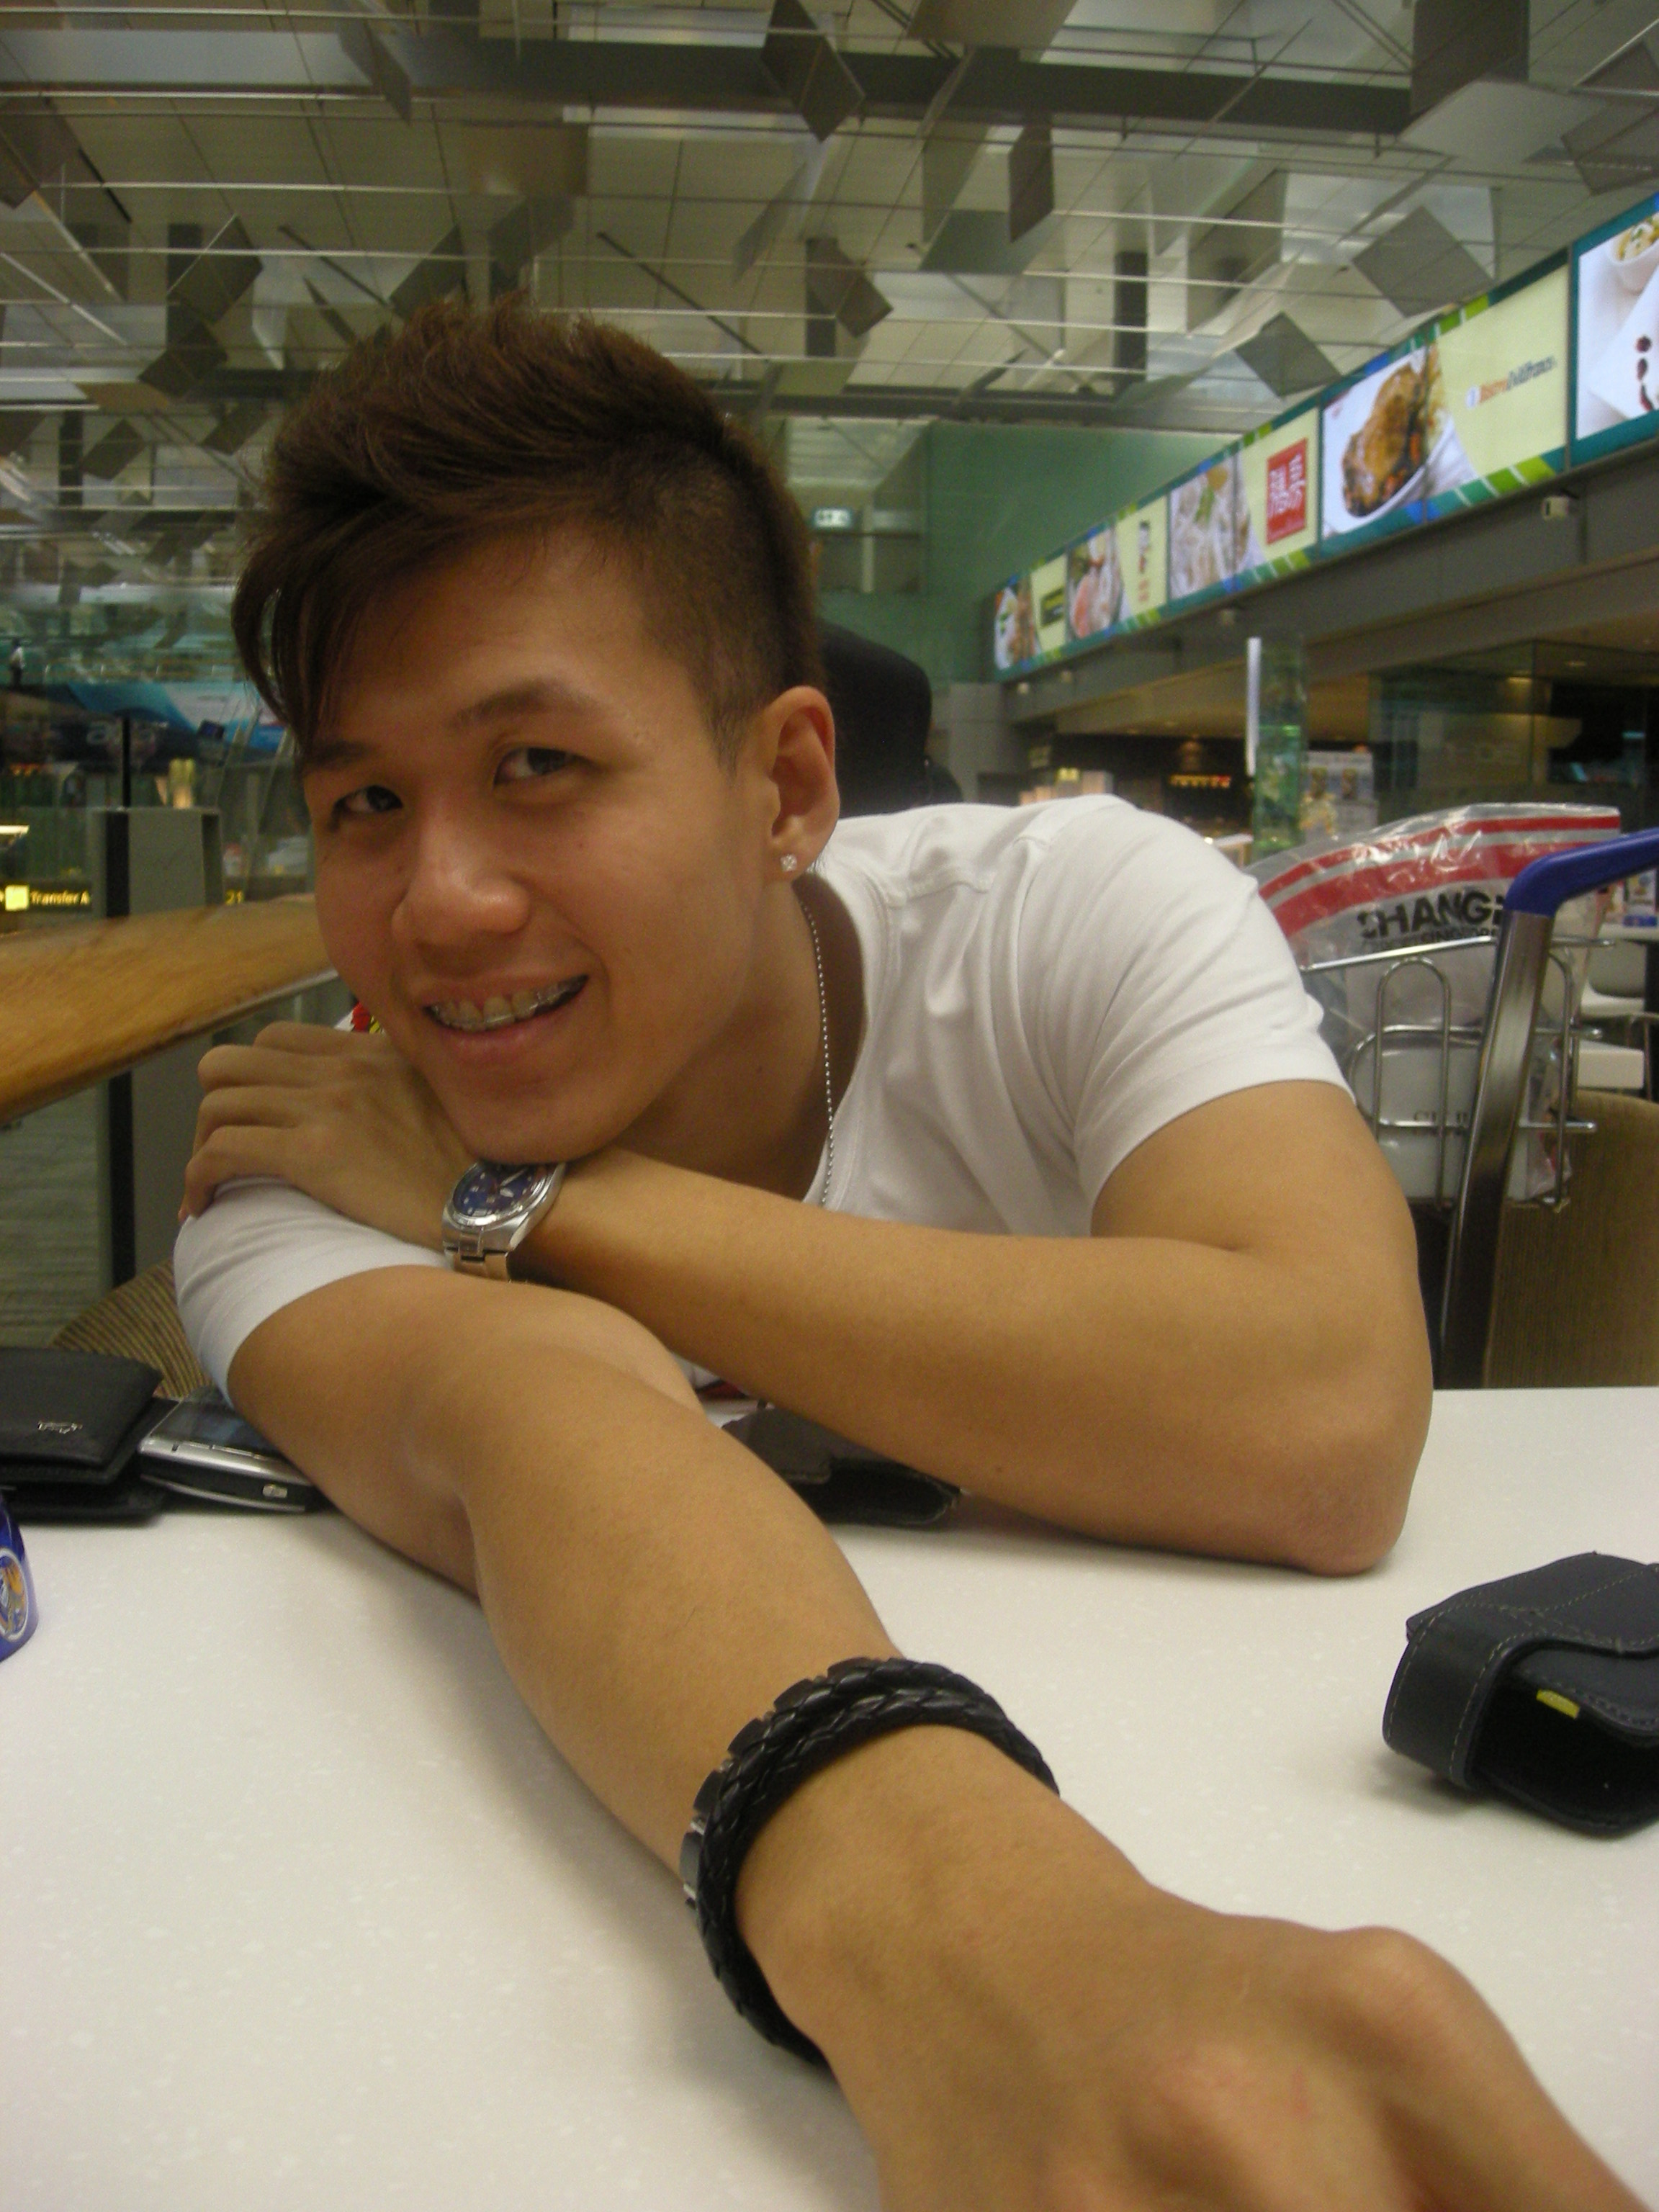 Me 2009 At Changi Airport